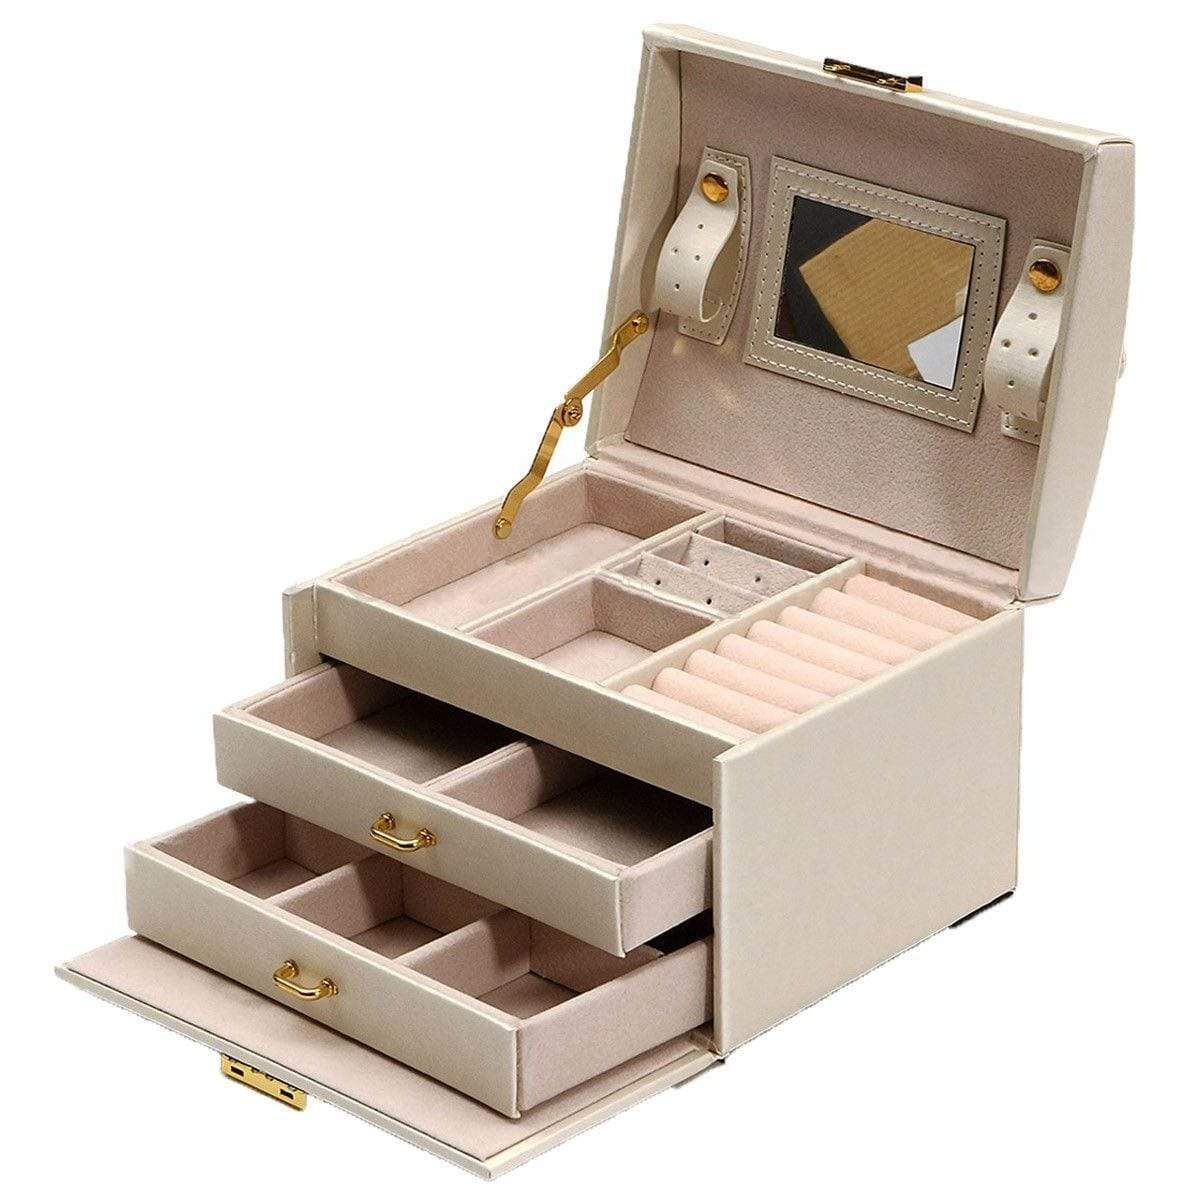 Large Jewelry Packaging & Display Box Armoire Dressing Chest with Clasps Bracelet Ring Organiser Carrying Cases - Euforia Jewels